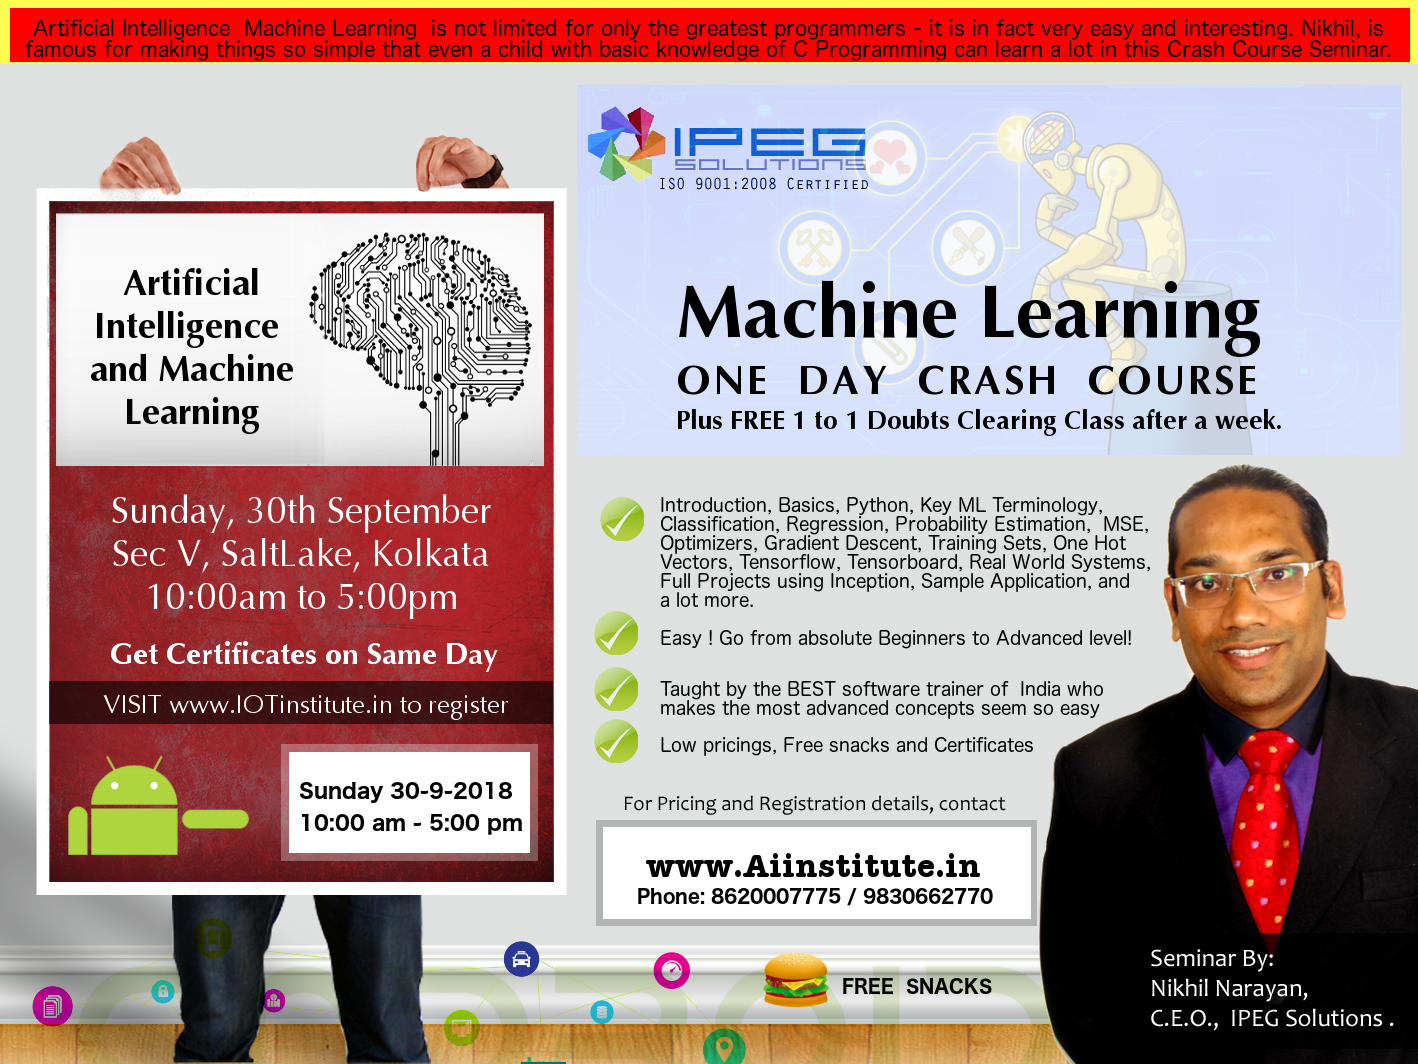 Aritificial Intelligence, Machine Learning, Deep Learning Training